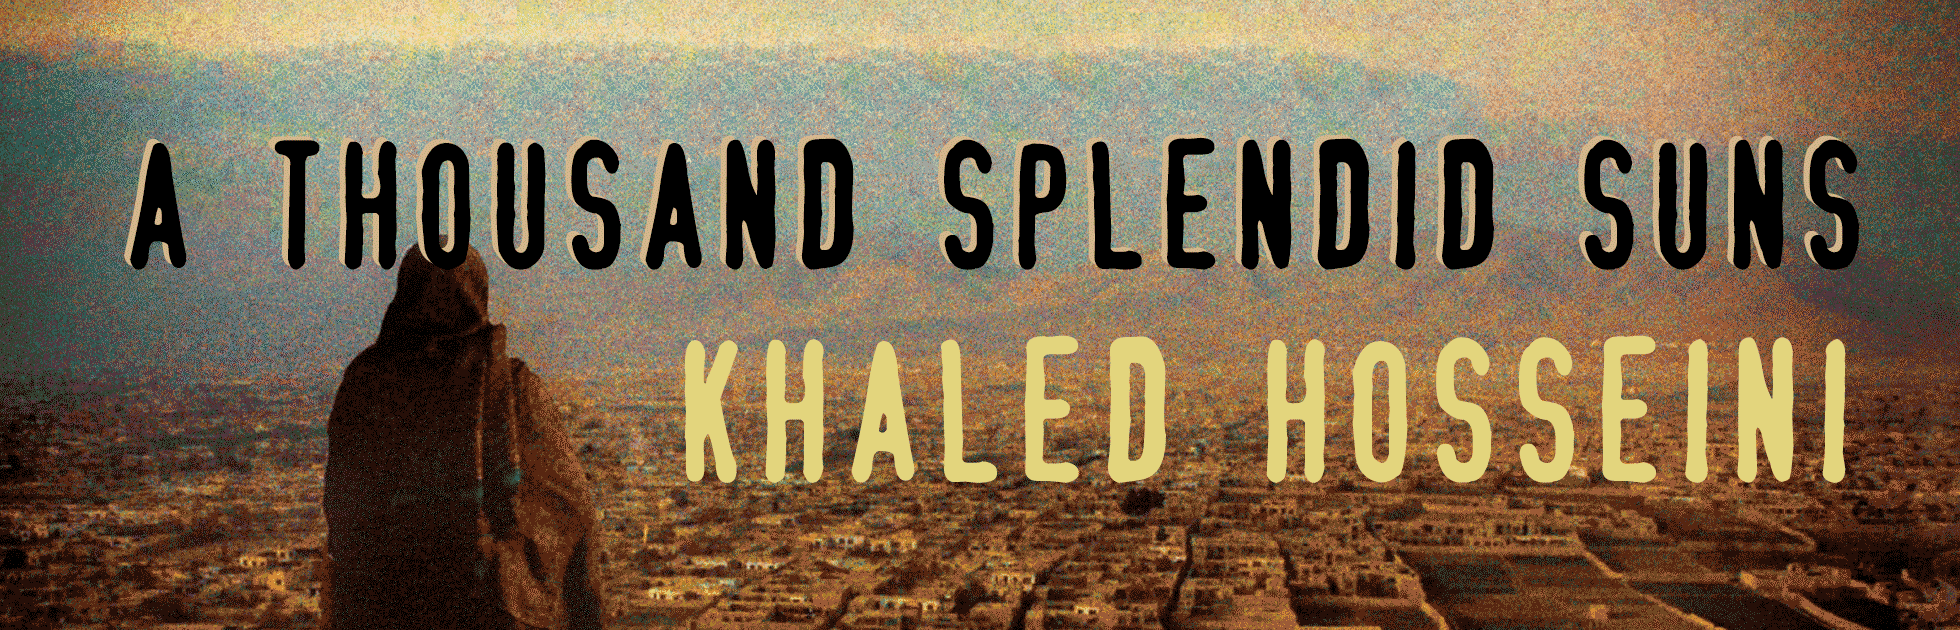 a thousands splendid suns book review Khalid hosseini's new novel, a thousand splendid suns is his second, following the much-acclaimed first, kite runner having not had the opportunity yet to read.